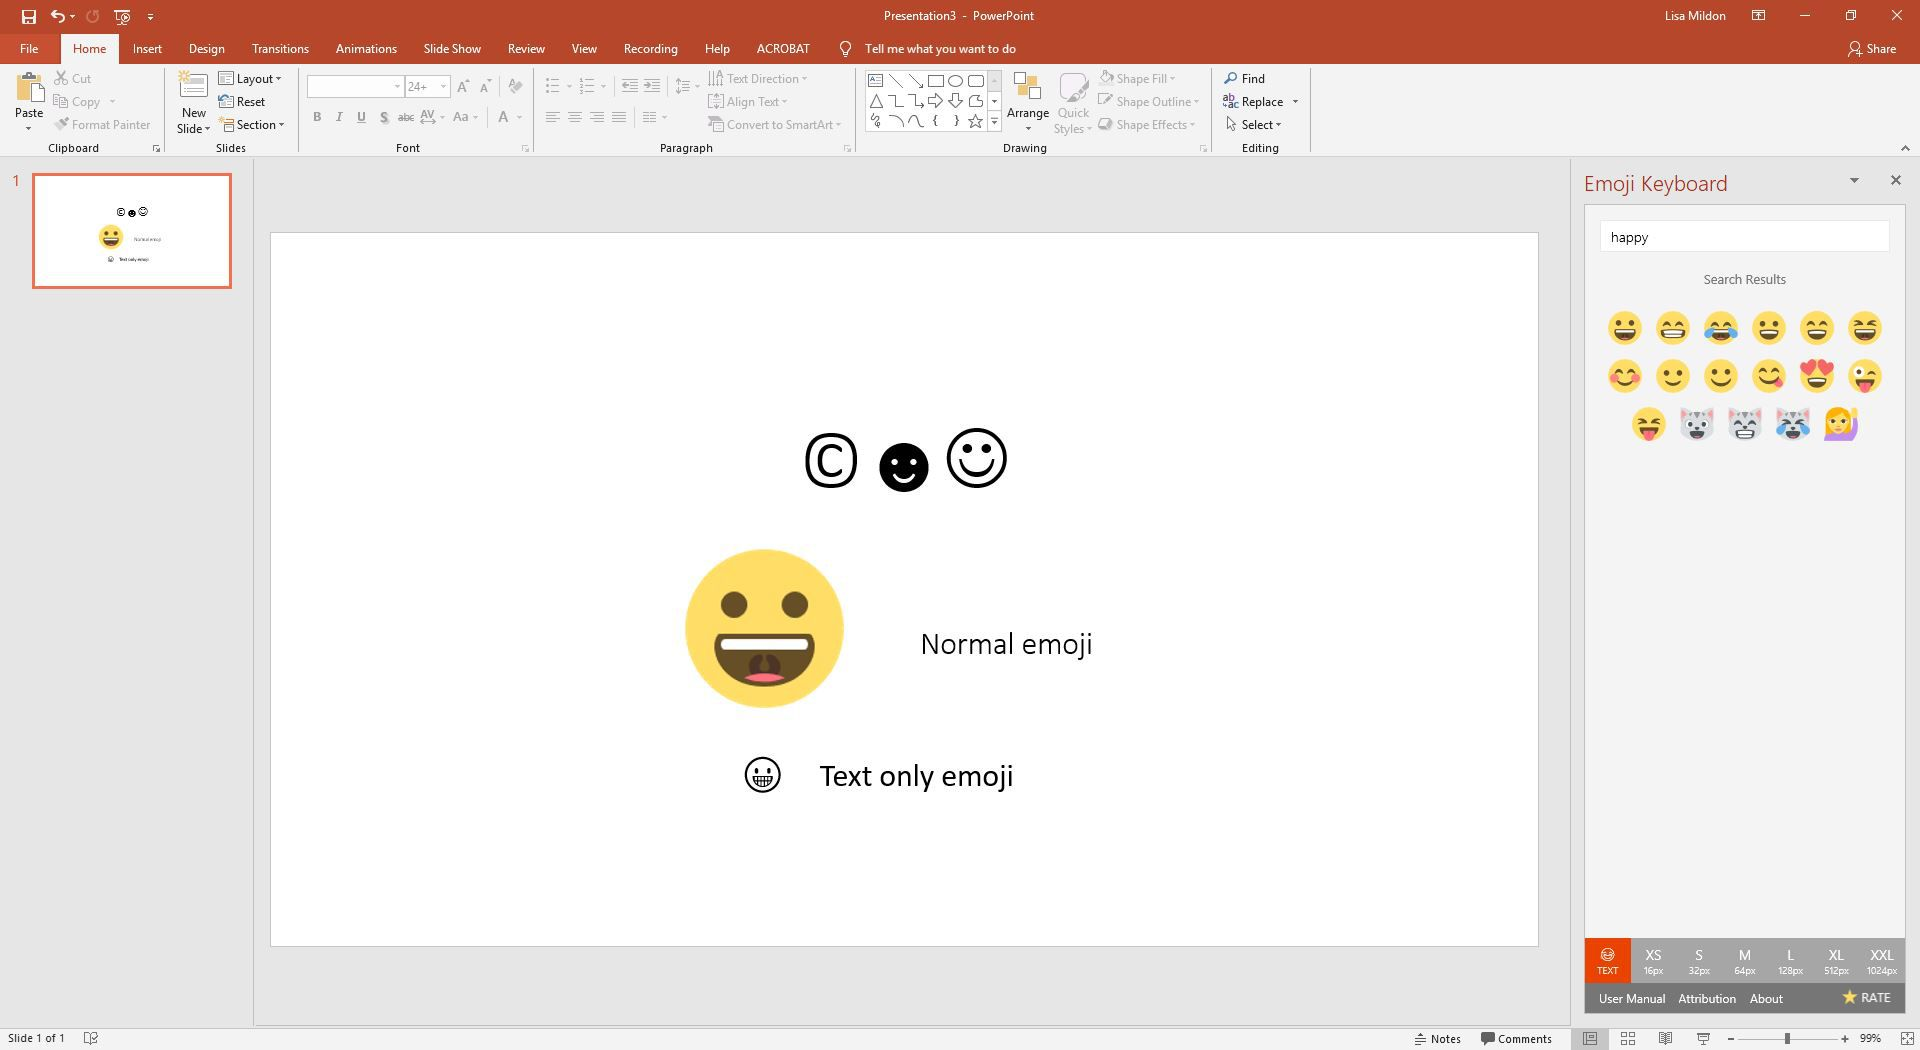 Insert a Copyright Symbol or Emoji on a PowerPoint Slide